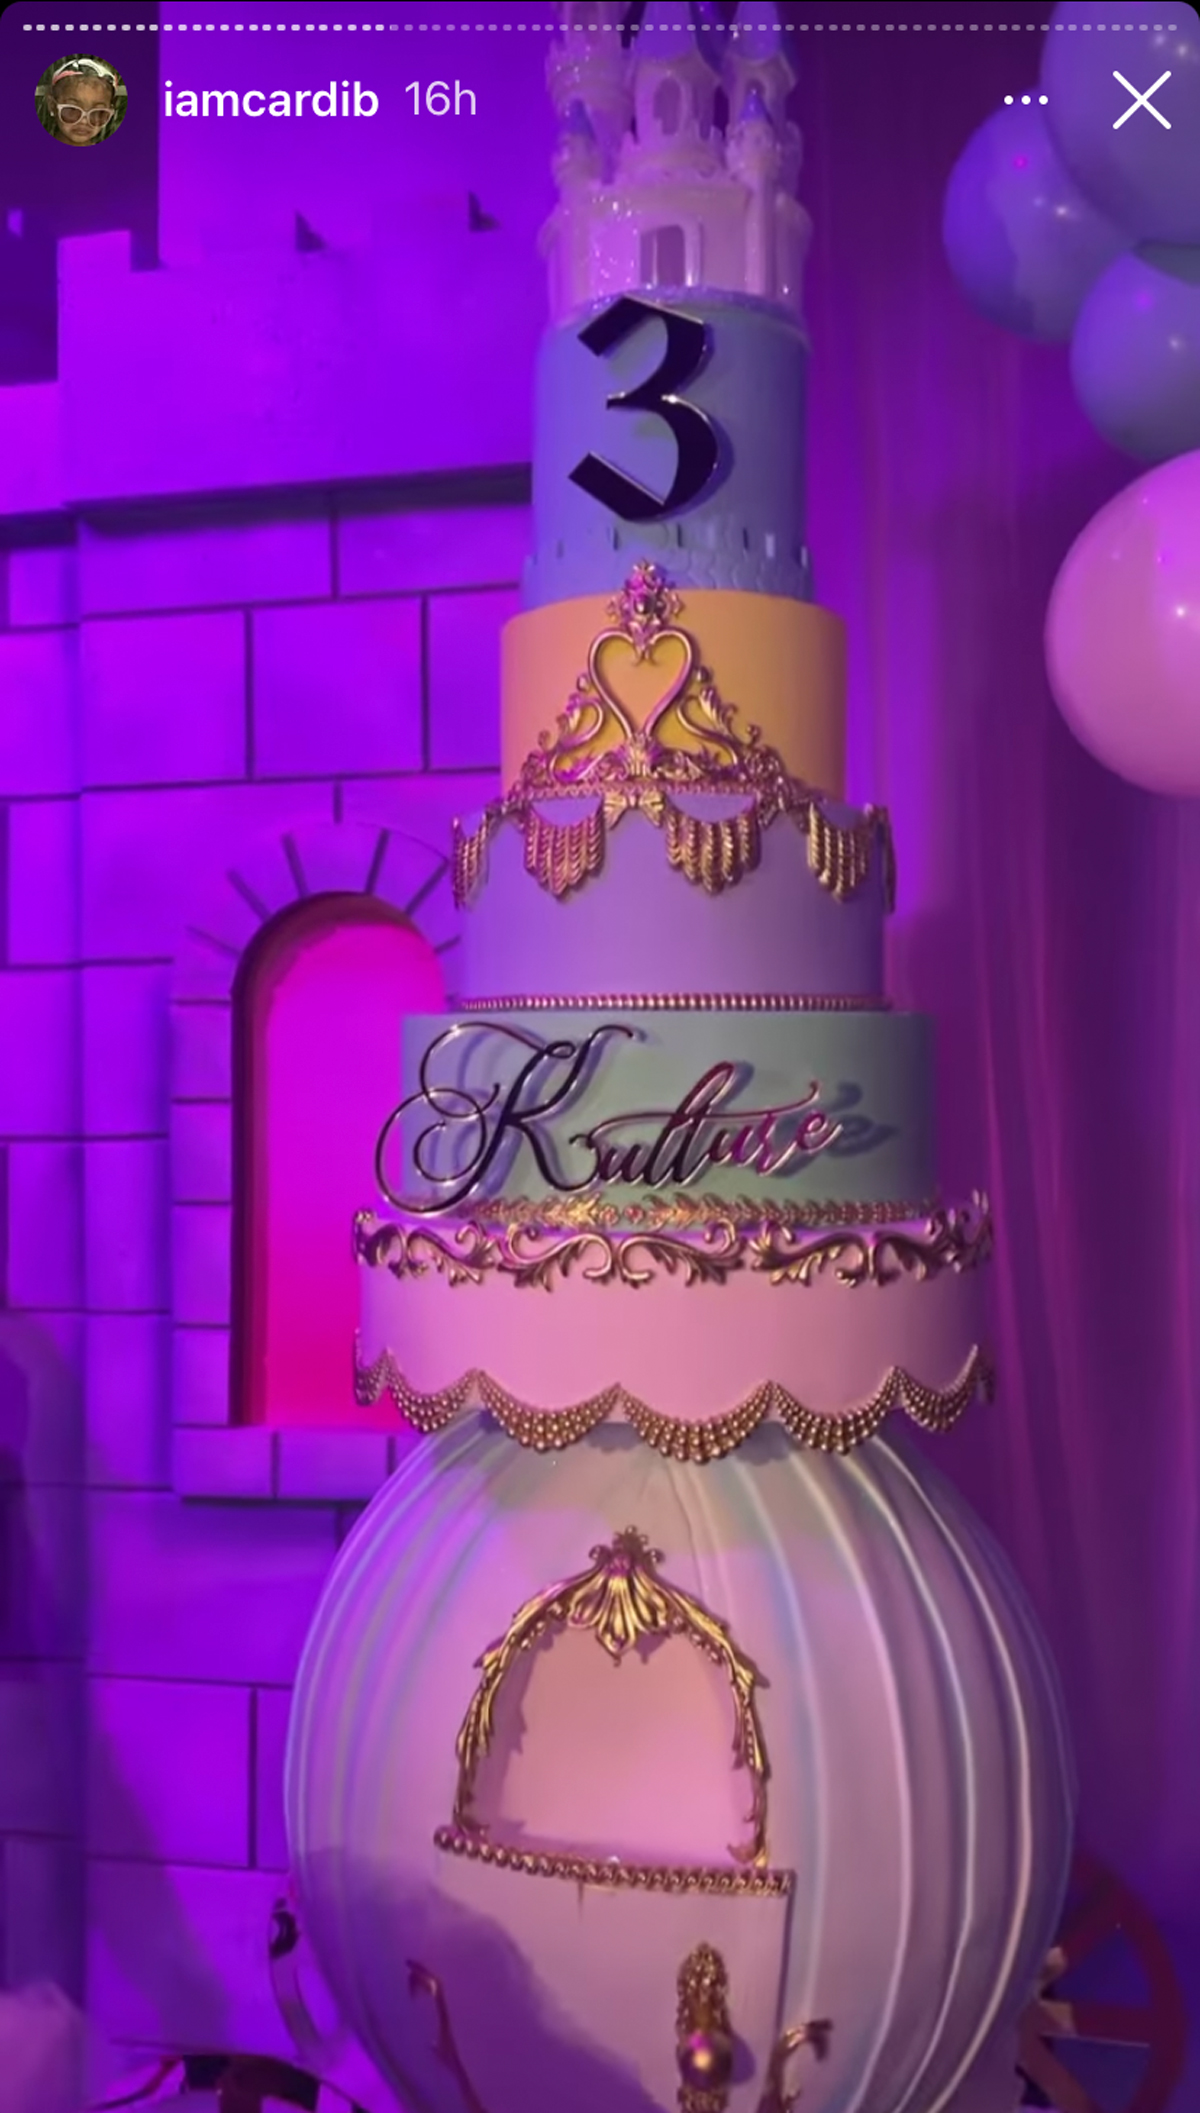 Cardi B & Offset Throw Epic Fairytale-Themed Birthday Bash For Daughter Kulture!